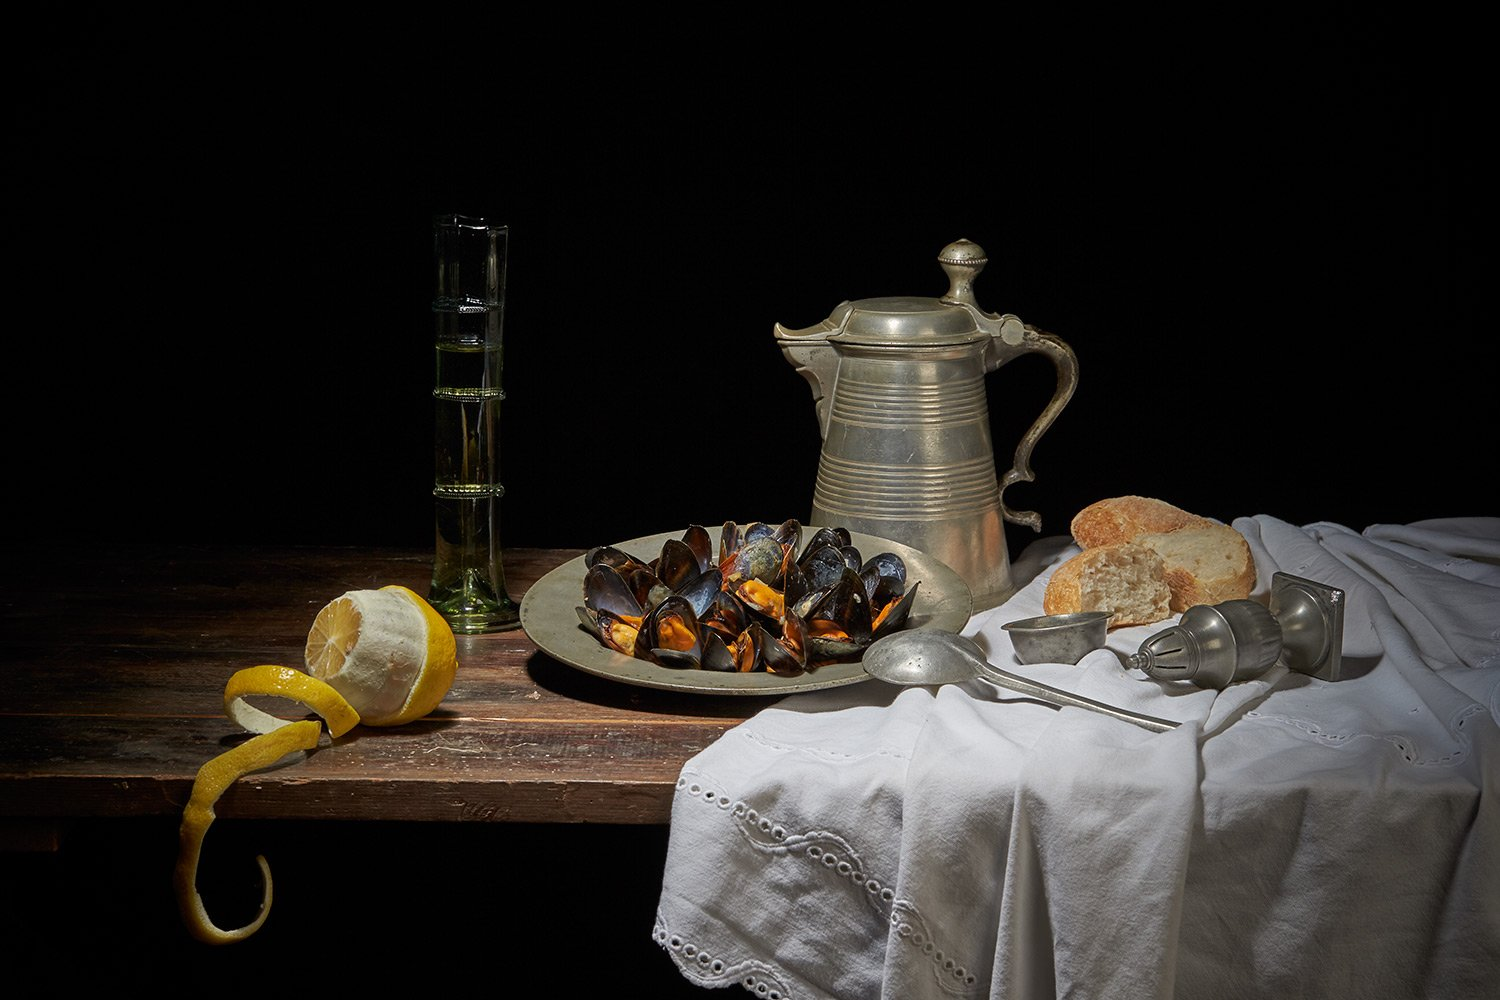 mussels_and_wine_00688-1